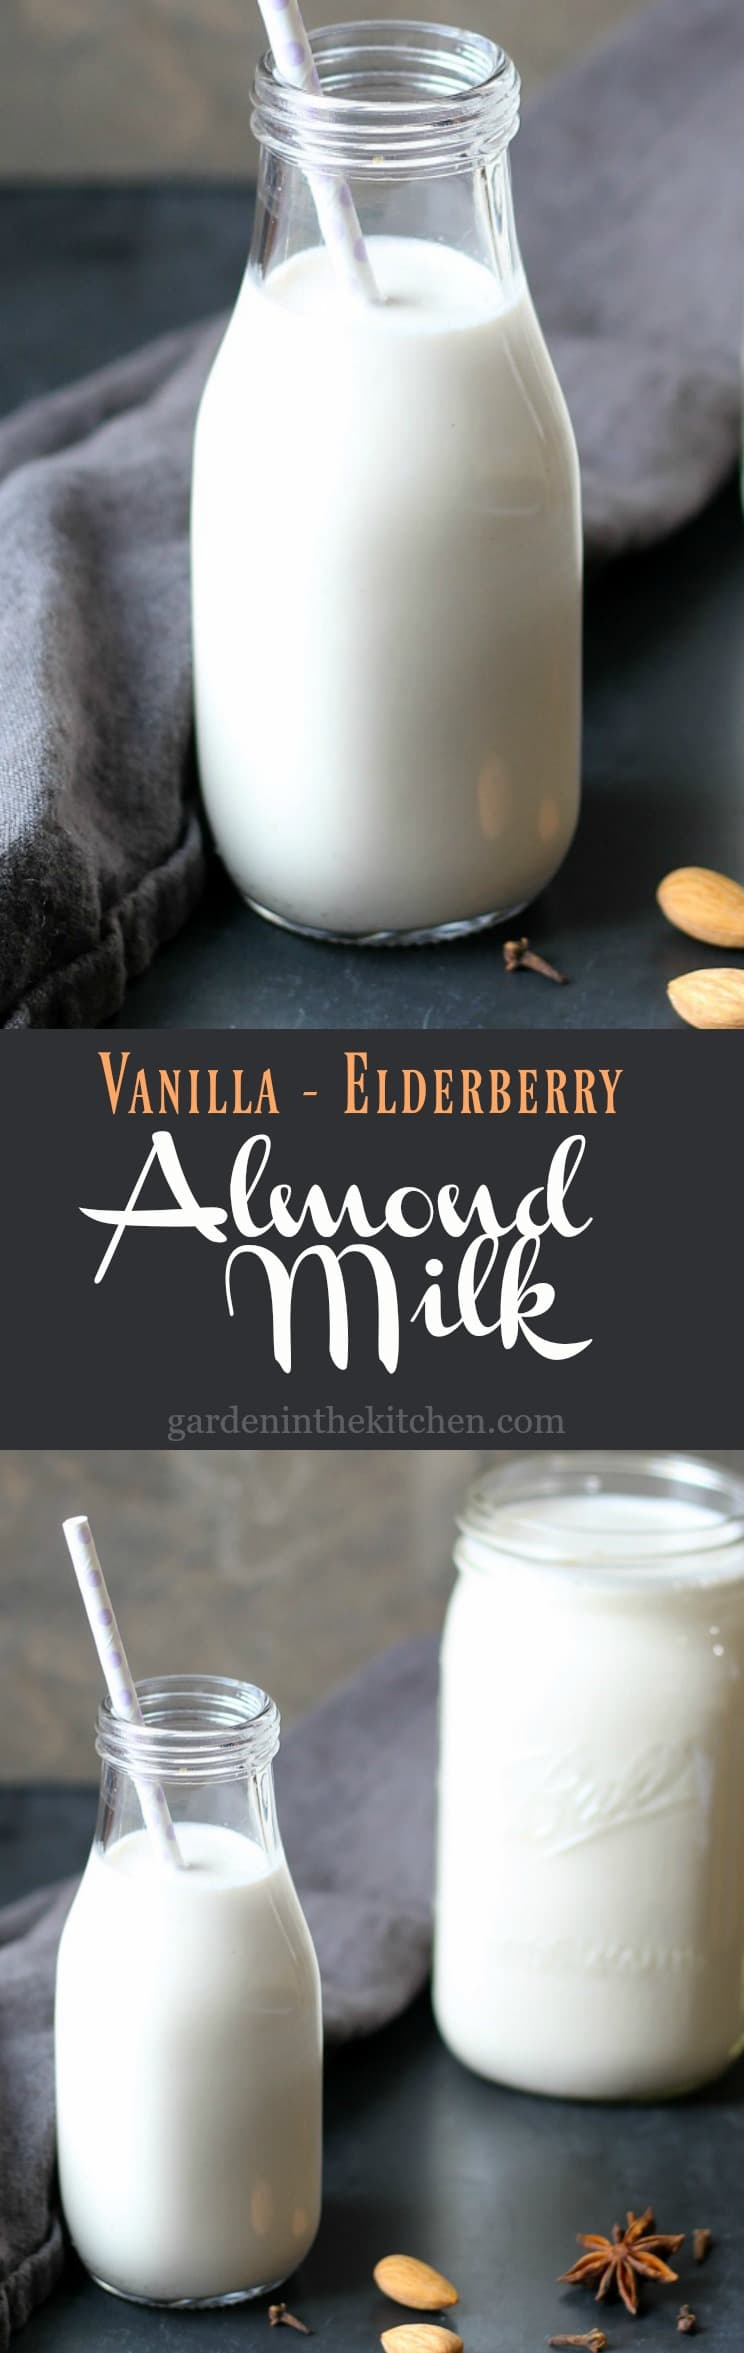 Vanilla Elderberry Infused Almond Milk | gardeninthekitchen.com